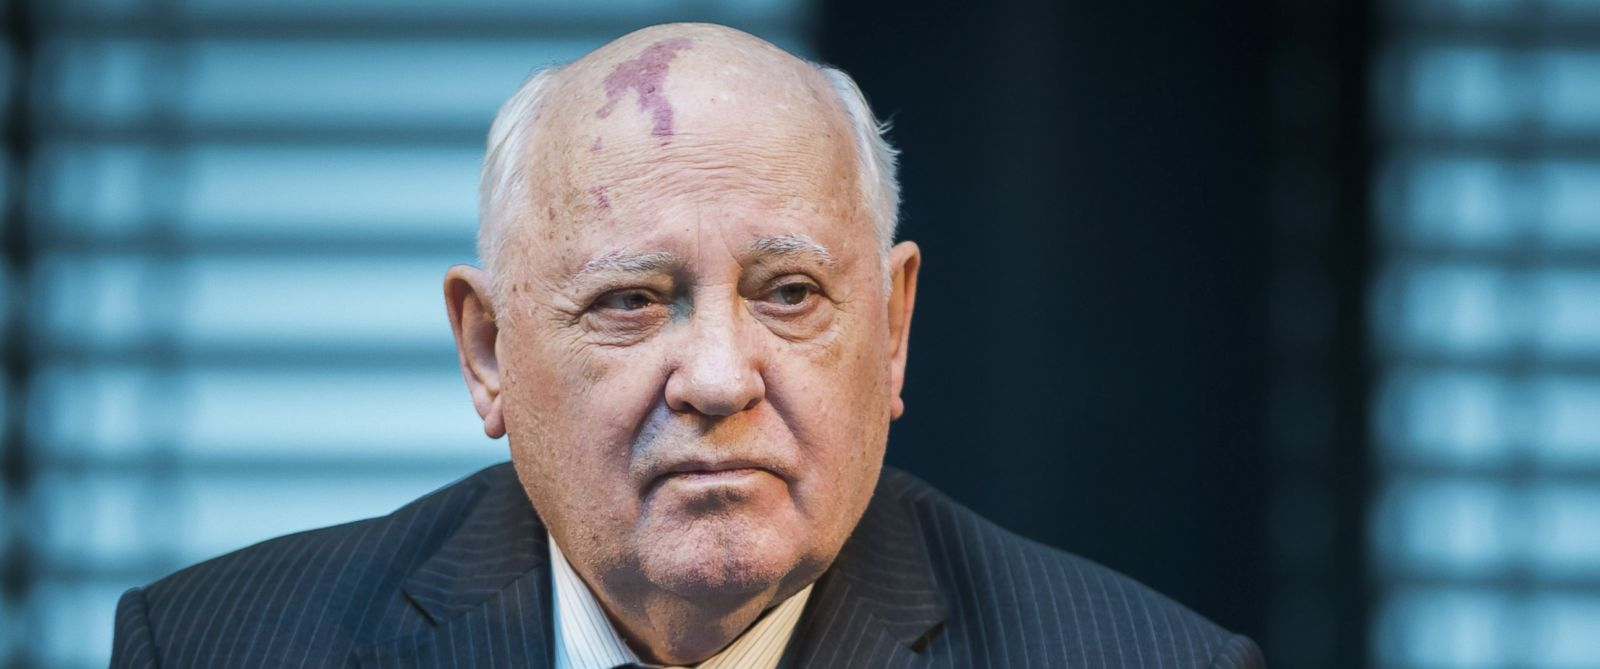 """PHOTO: Former President of the Soviet Union Mikhail Gorbachev attends a symposium on security in Europe 25 years after the fall of the """"Wall"""" in Berlin, Nov. 8, 2014."""